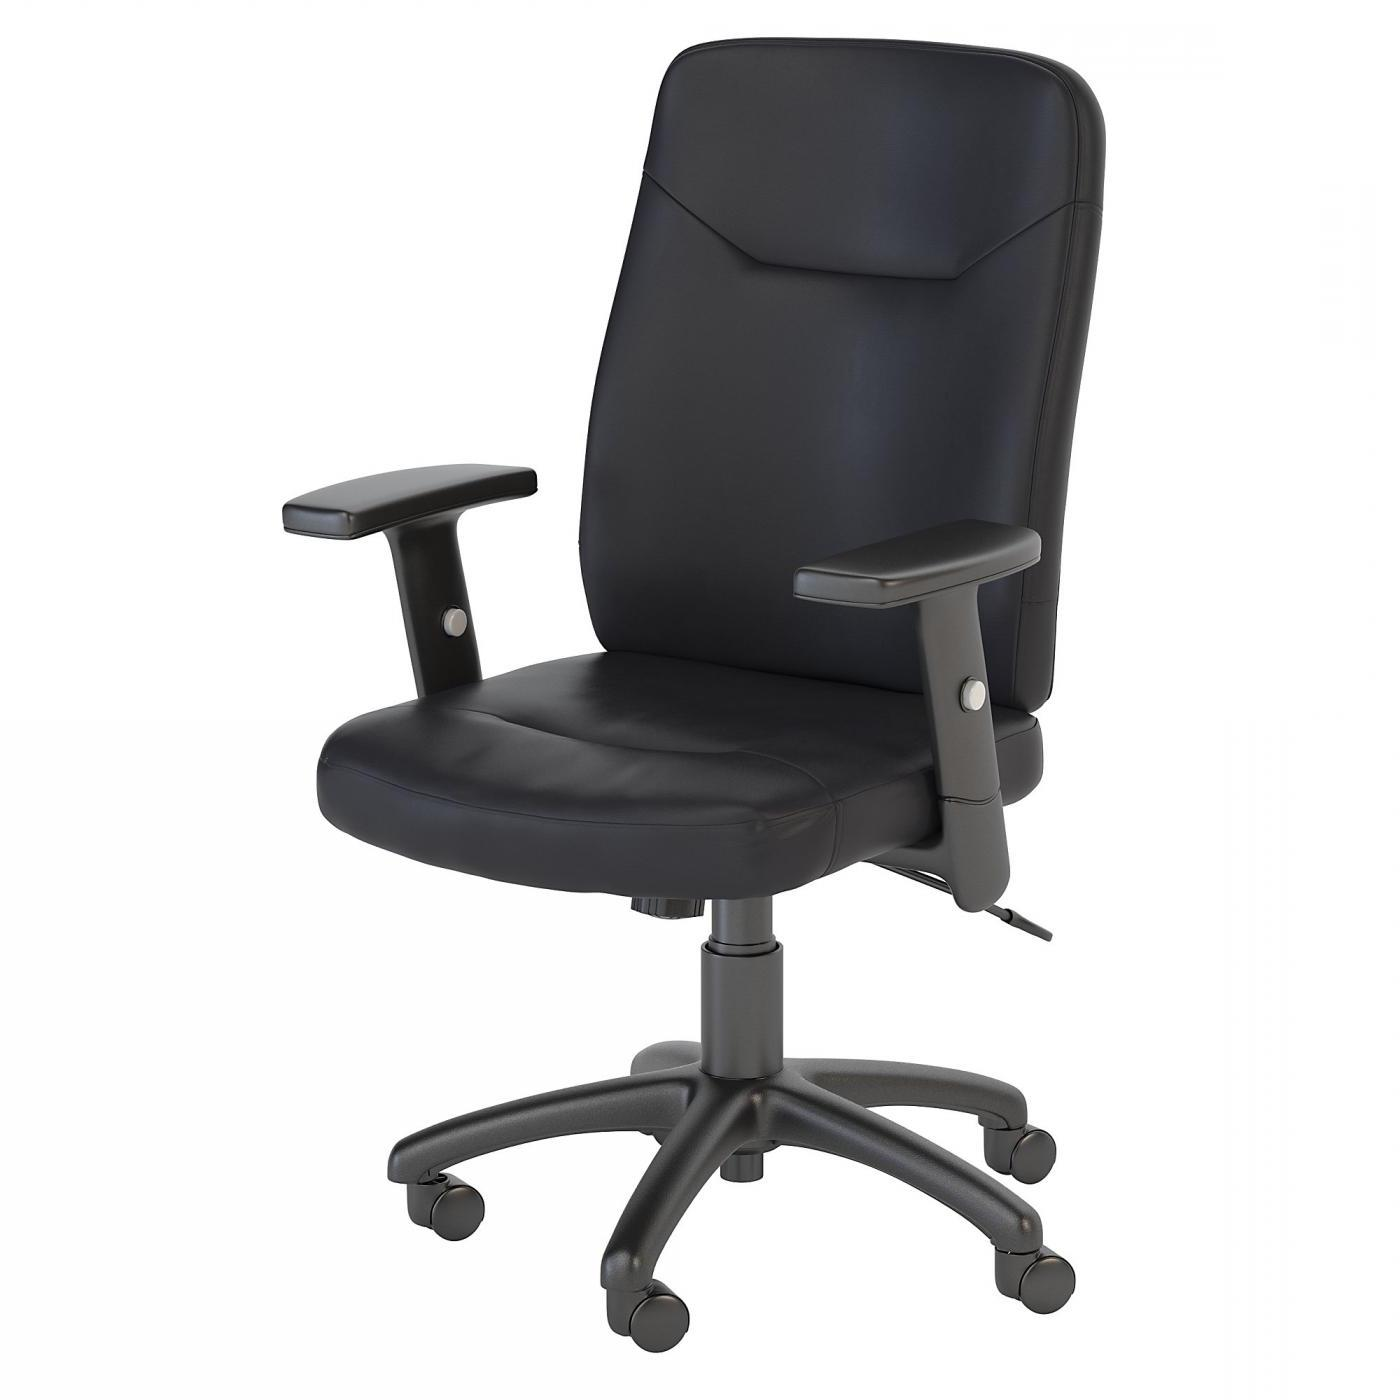 <font color=#c60><b>BUSH BUSINESS FURNITURE STANTON HIGH BACK LEATHER EXECUTIVE OFFICE CHAIR. FREE SHIPPING</font></b> </font></b></font></b>